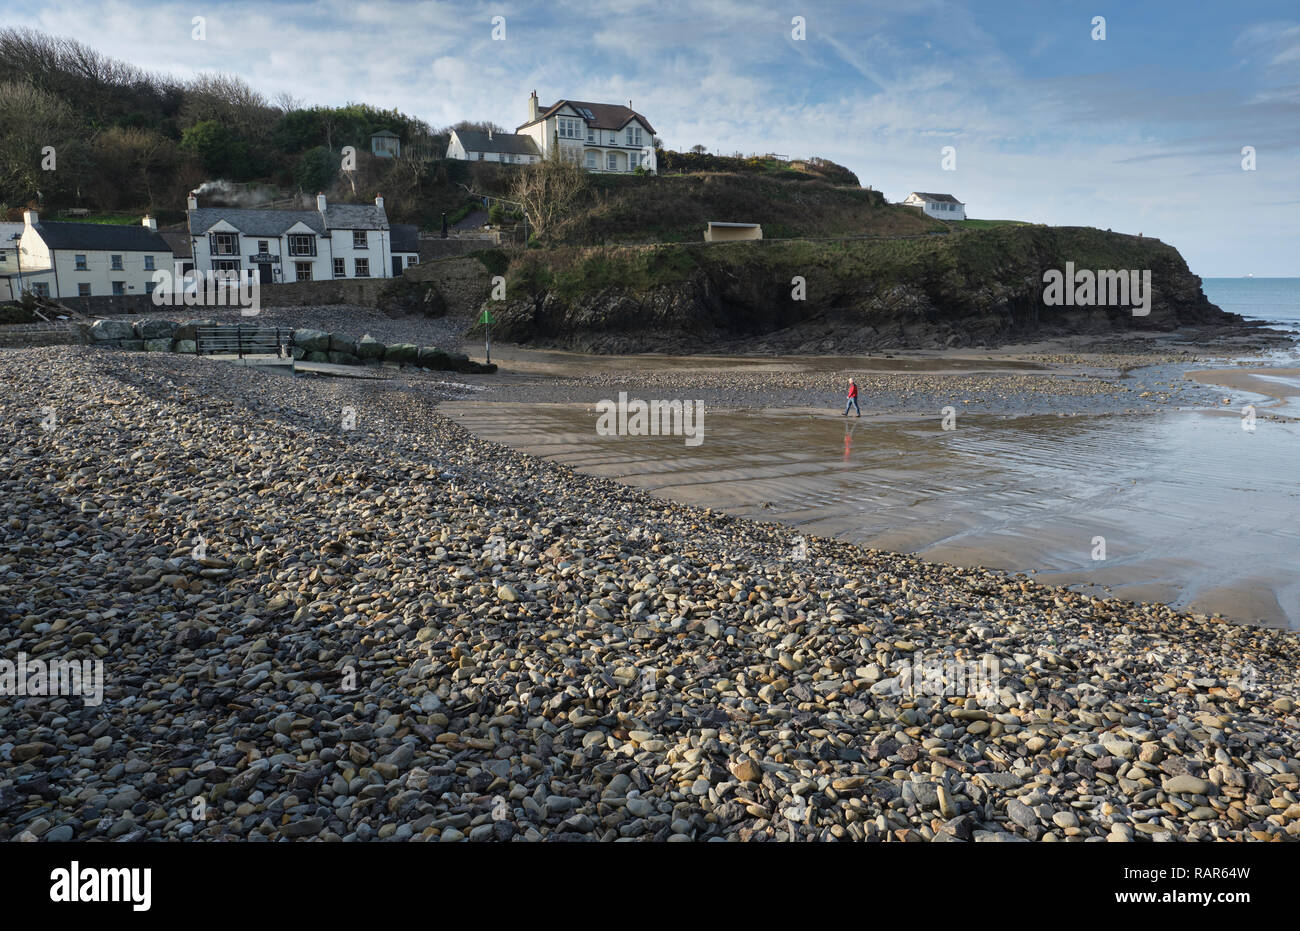 View of The Swan Inn taken from Little Haven beach, Pembrokeshire, Wales.in Winter. - Stock Image